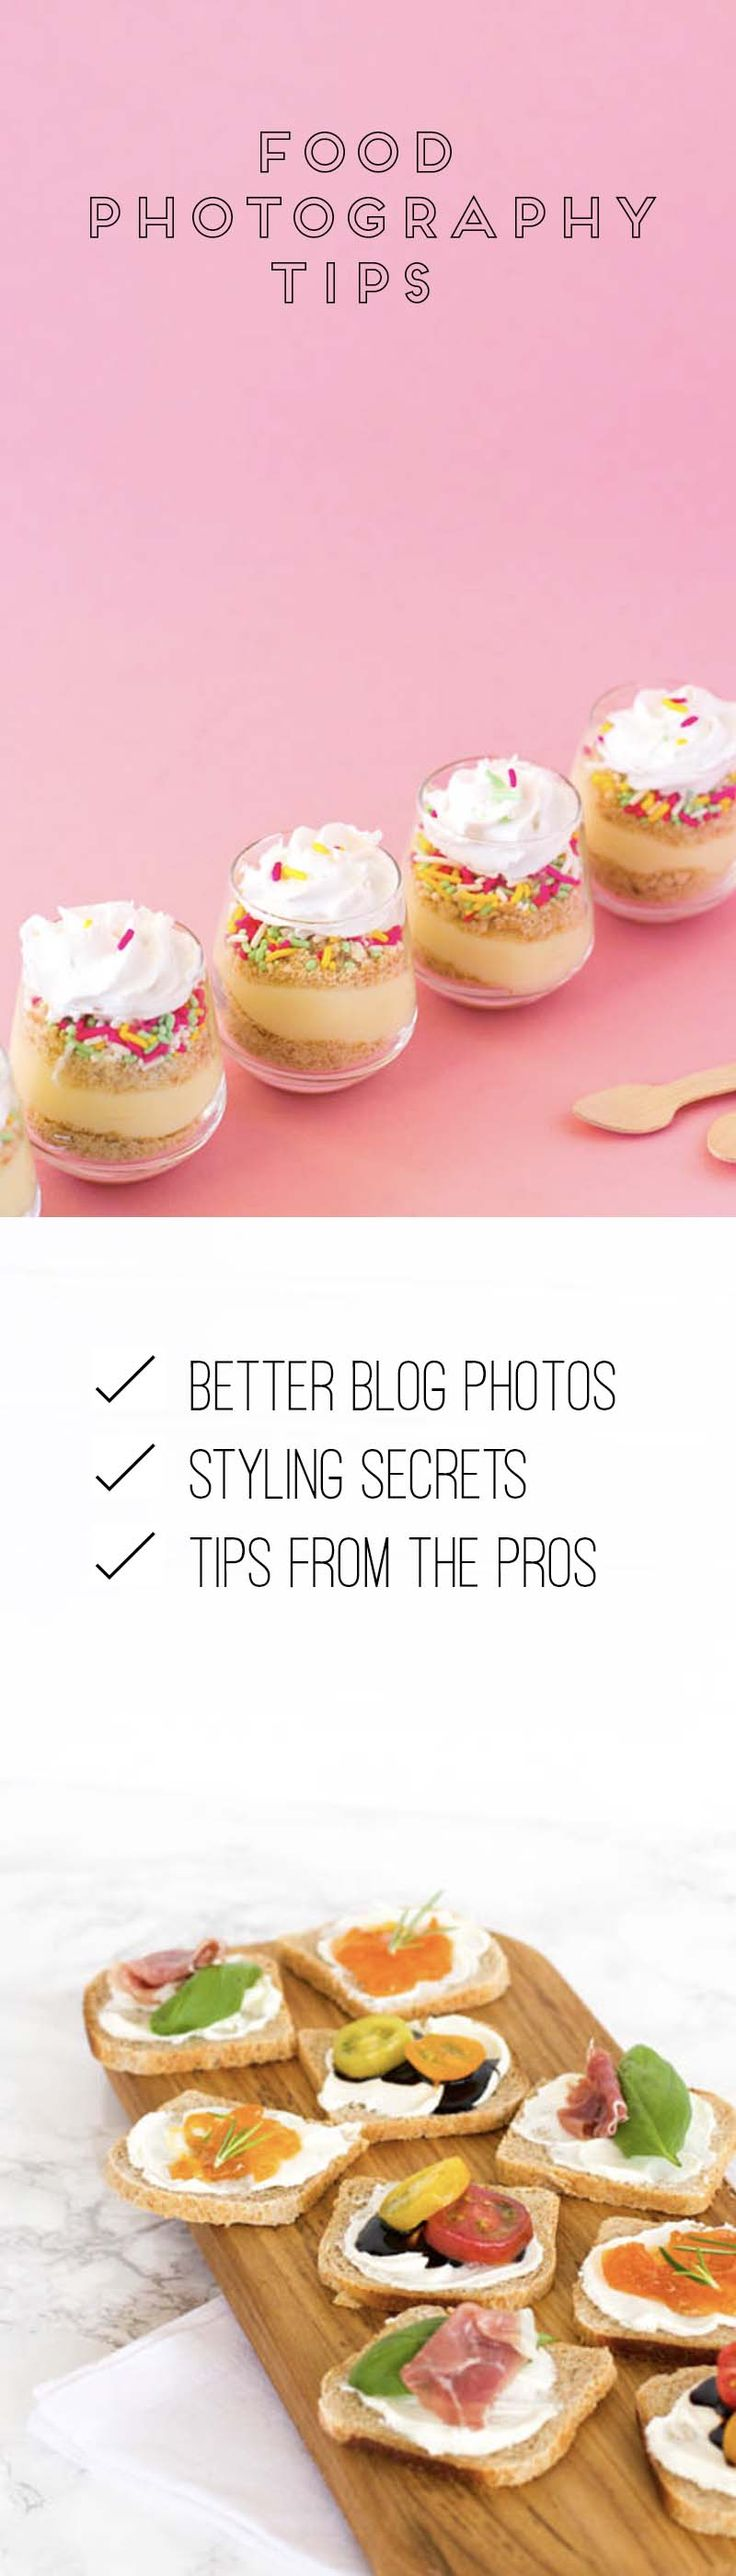 Take better food photography for your blog and business. These simple photography tips will boost your brand.